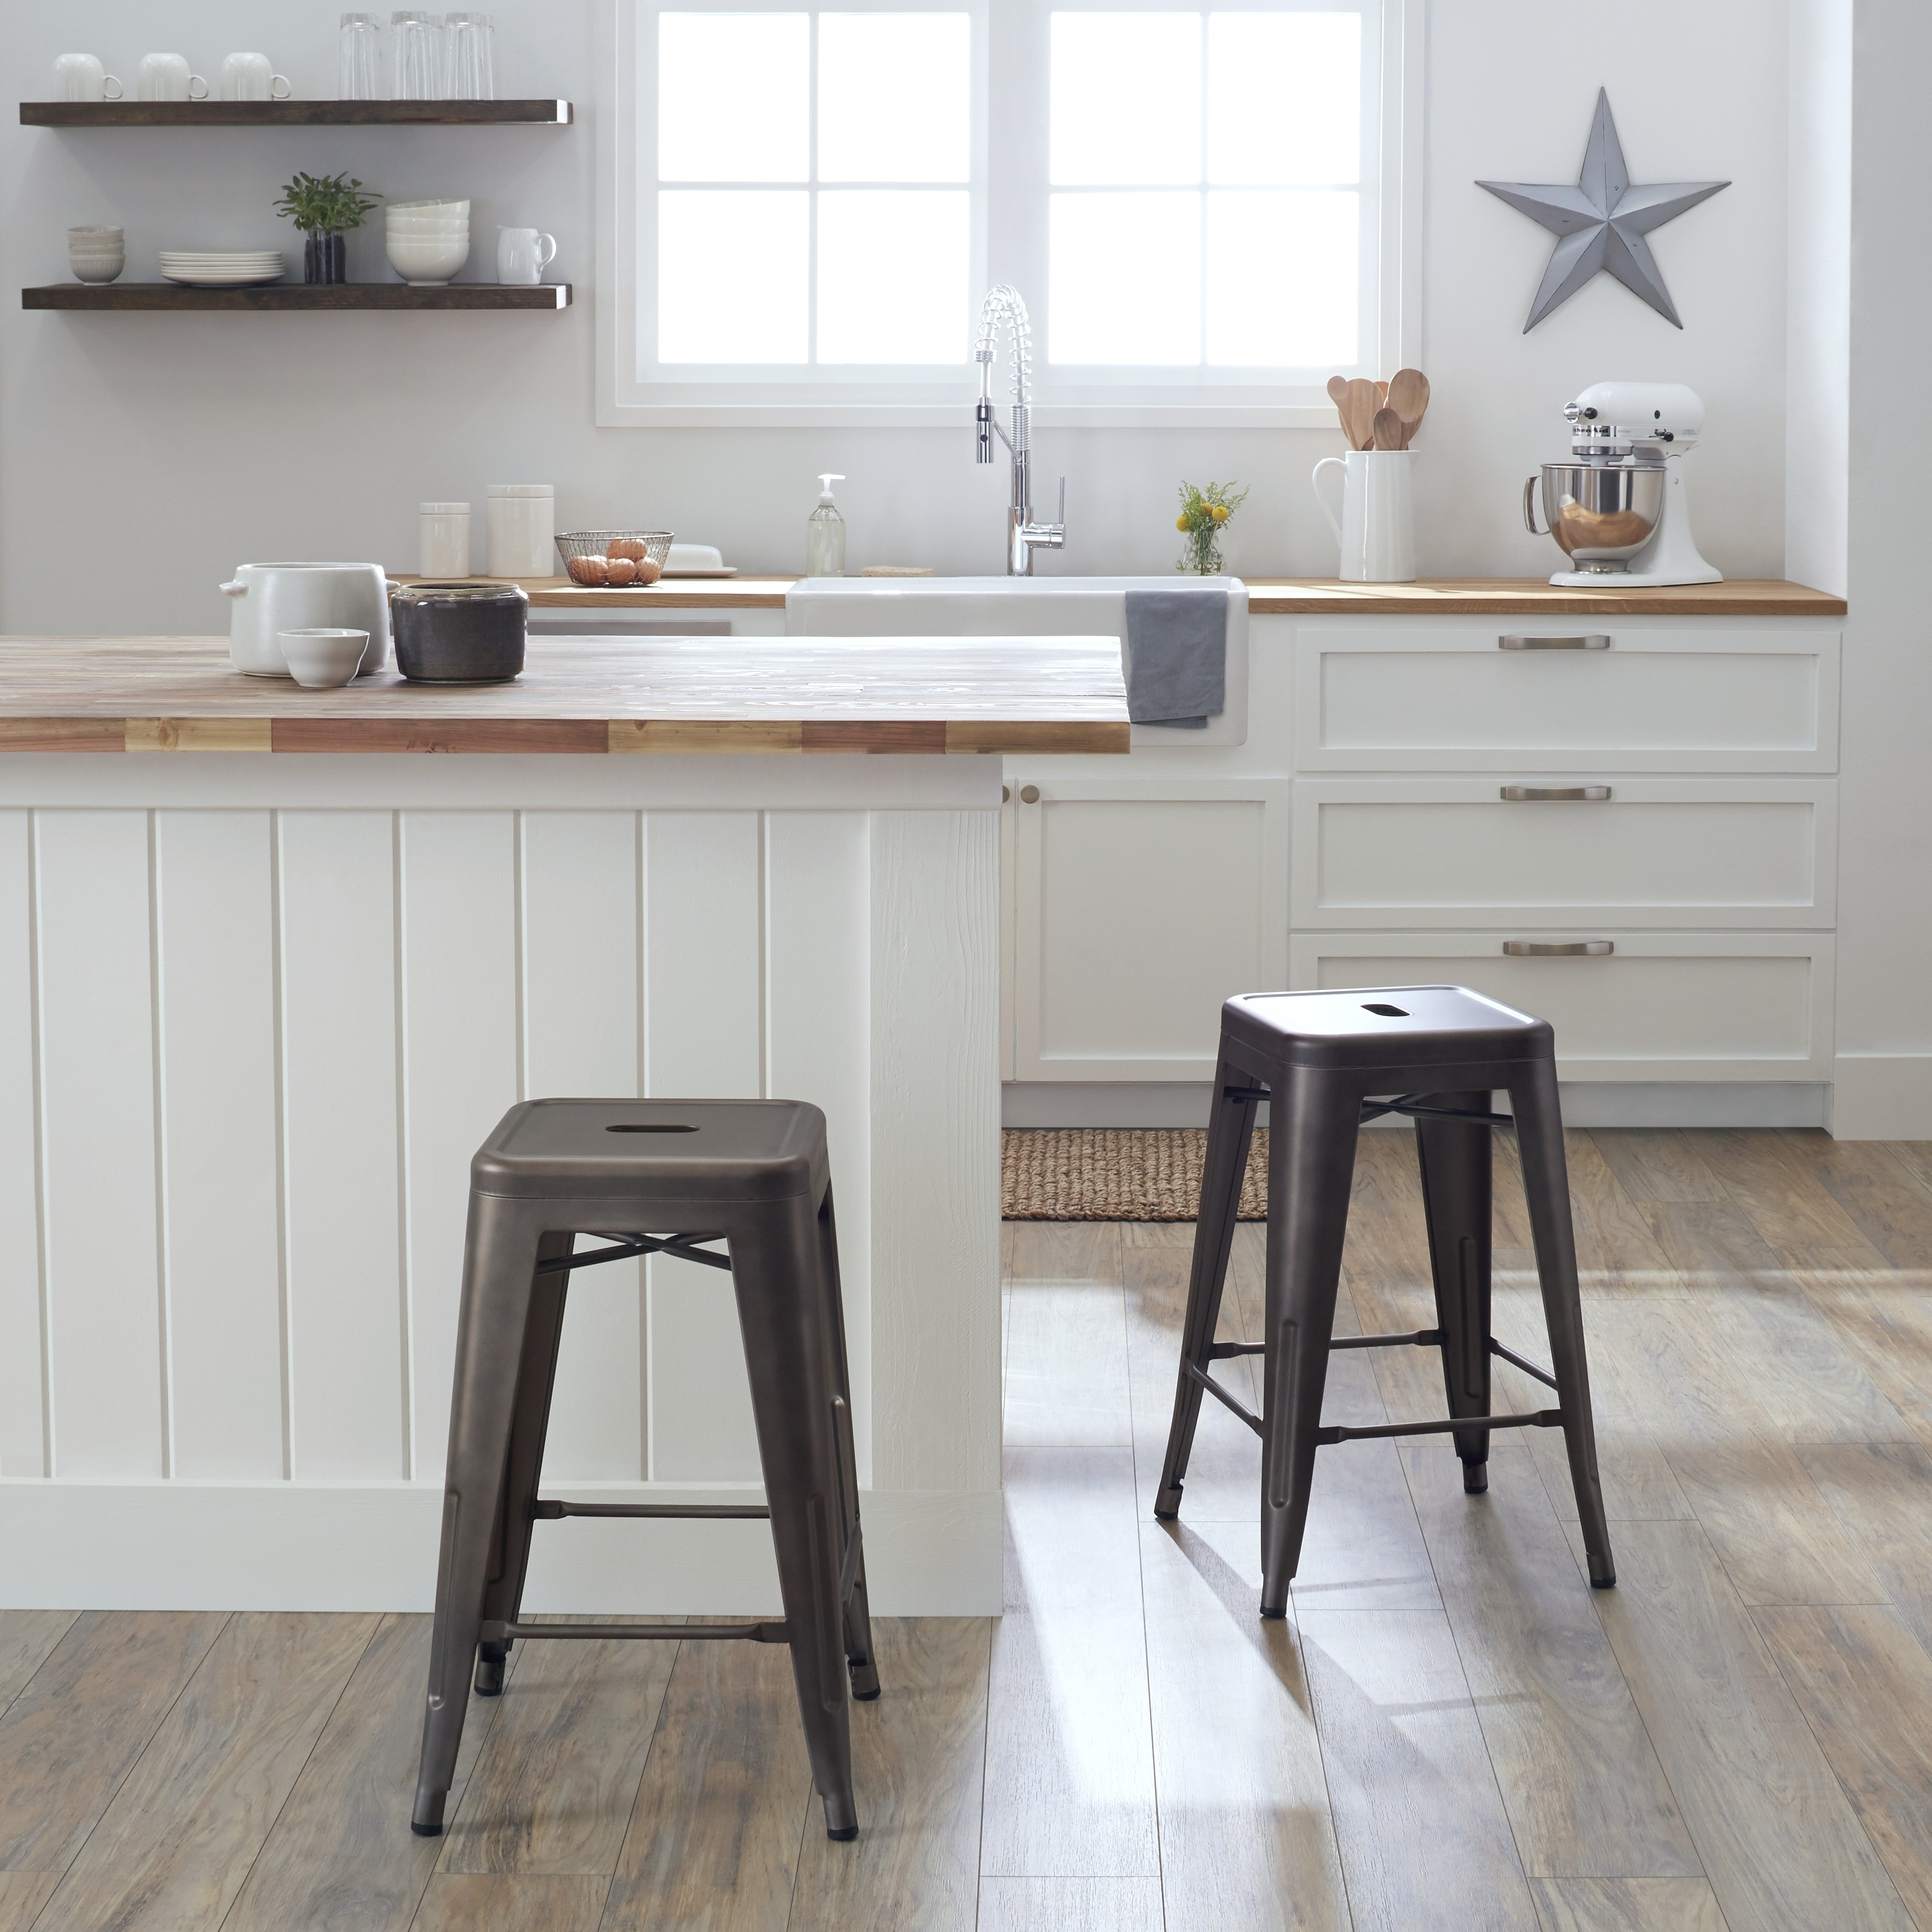 baroque backless counter stools in kitchen traditional with next to n alongside f and a abbyson. Black Bedroom Furniture Sets. Home Design Ideas